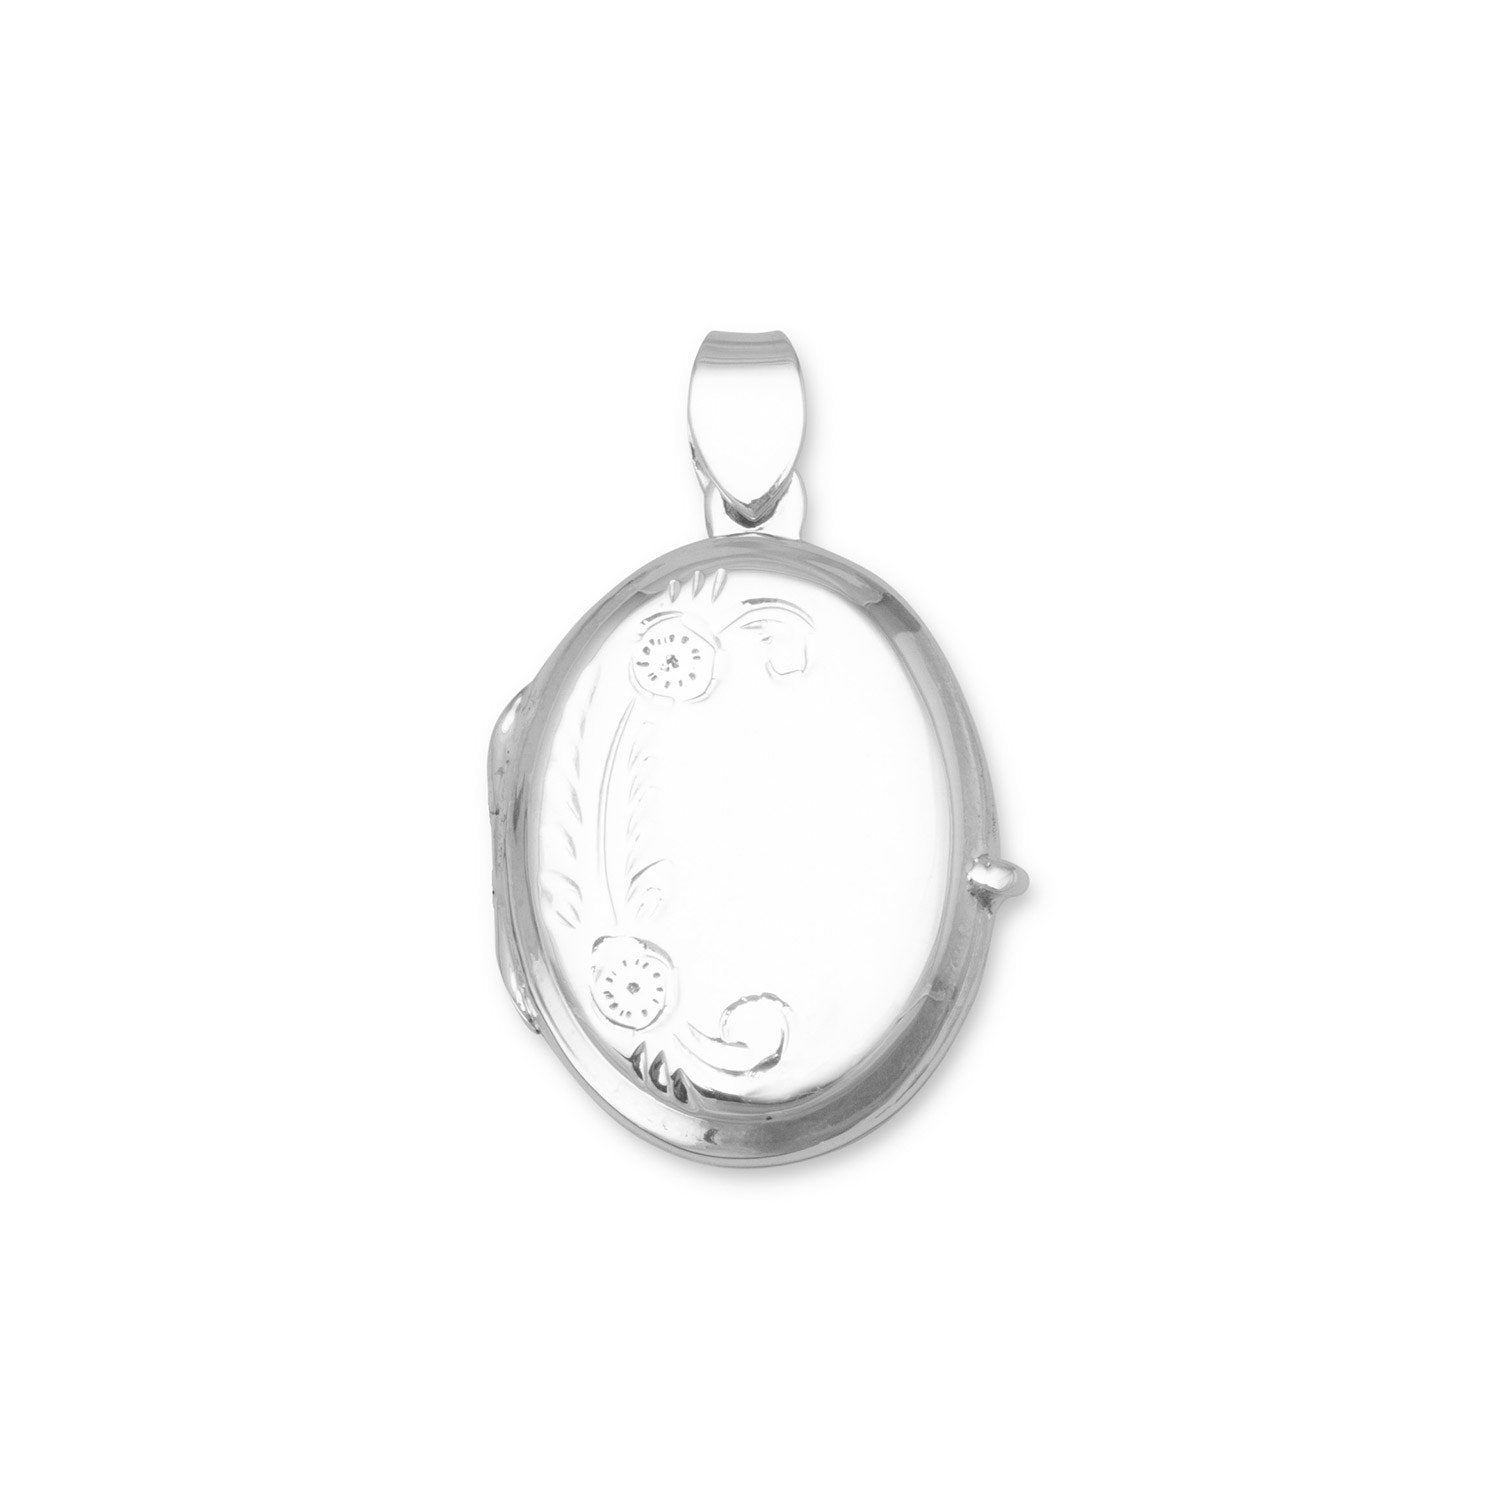 Small Polished Floral Design Oval Picture Locket - the-southern-magnolia-too